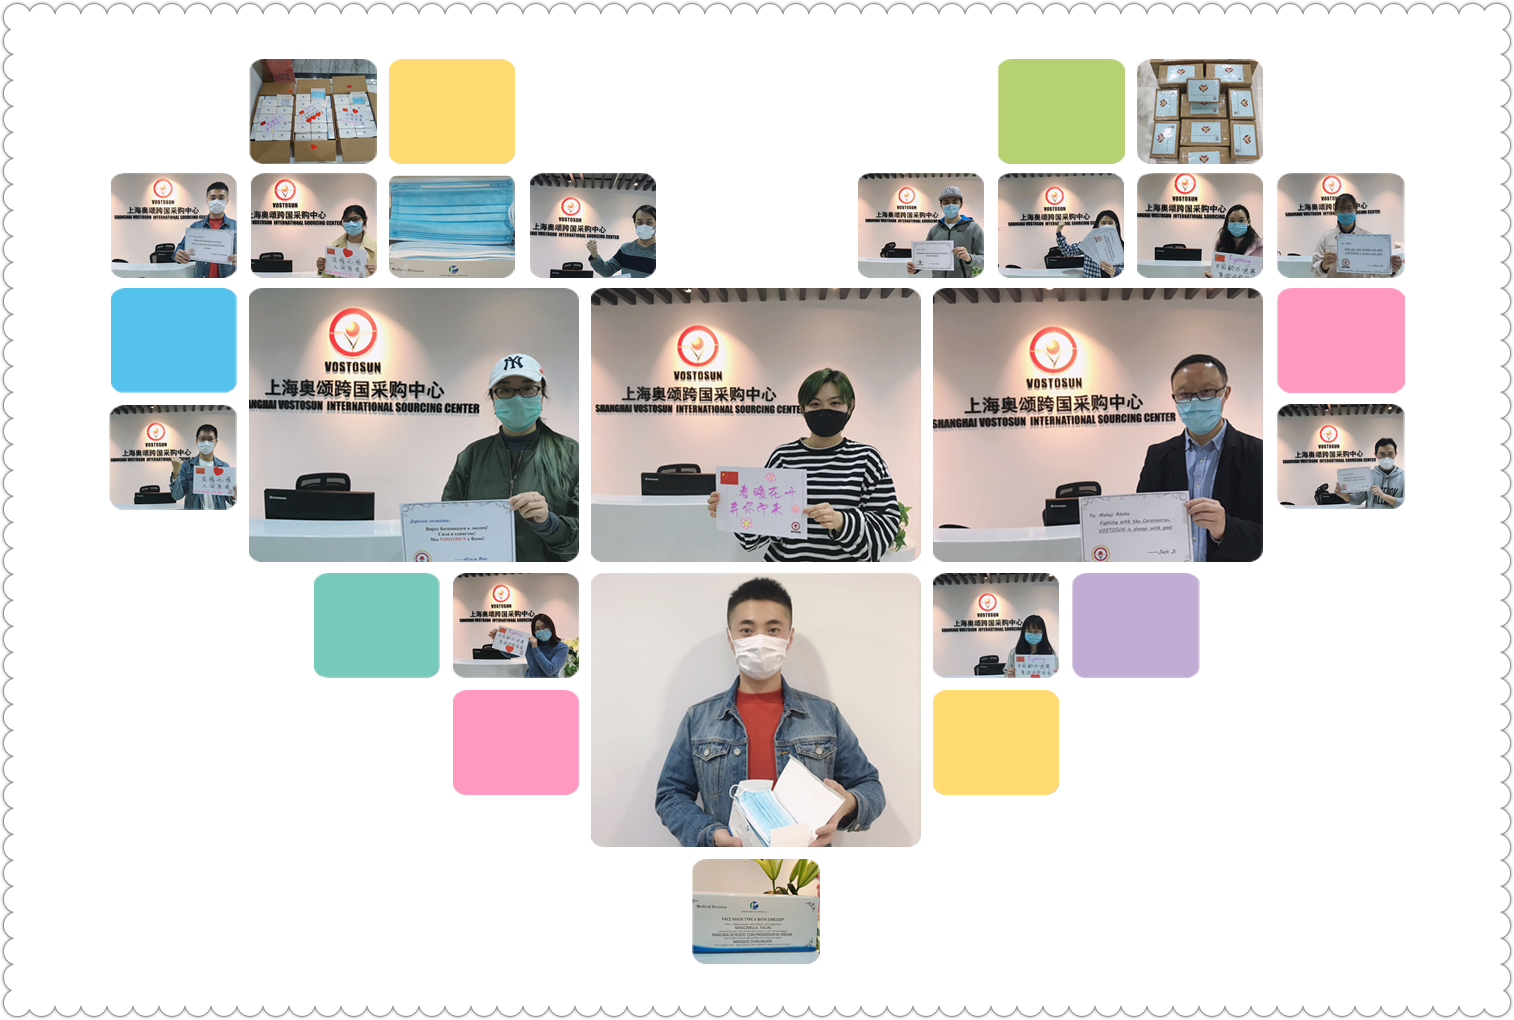 In March 2020, we sent customers free face masks to show our concern.